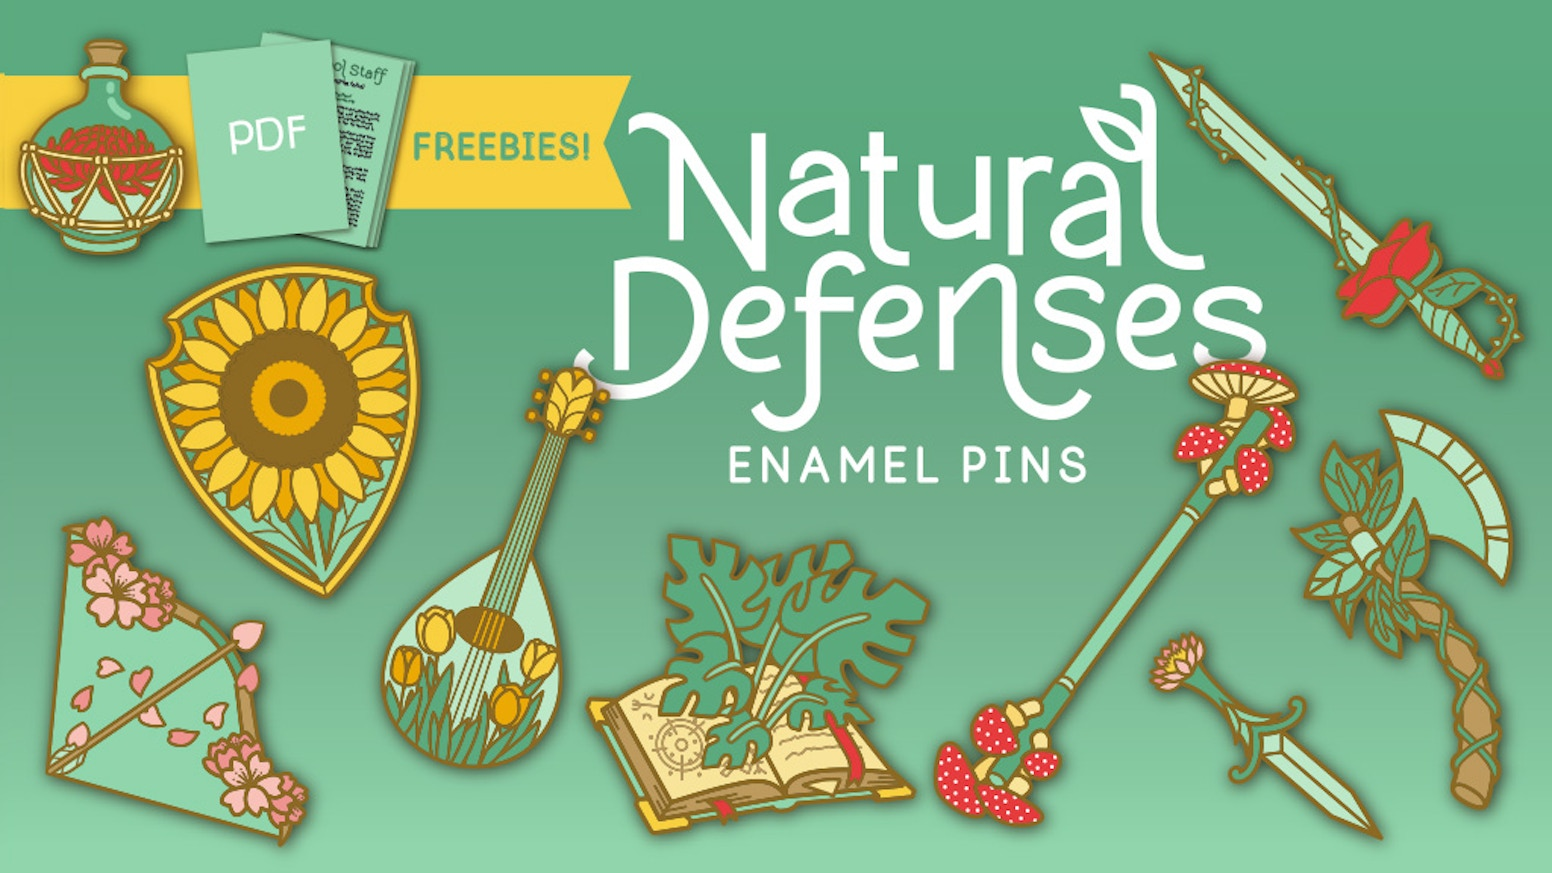 Magical 5th Edition Enamel Pins inspired by Nature